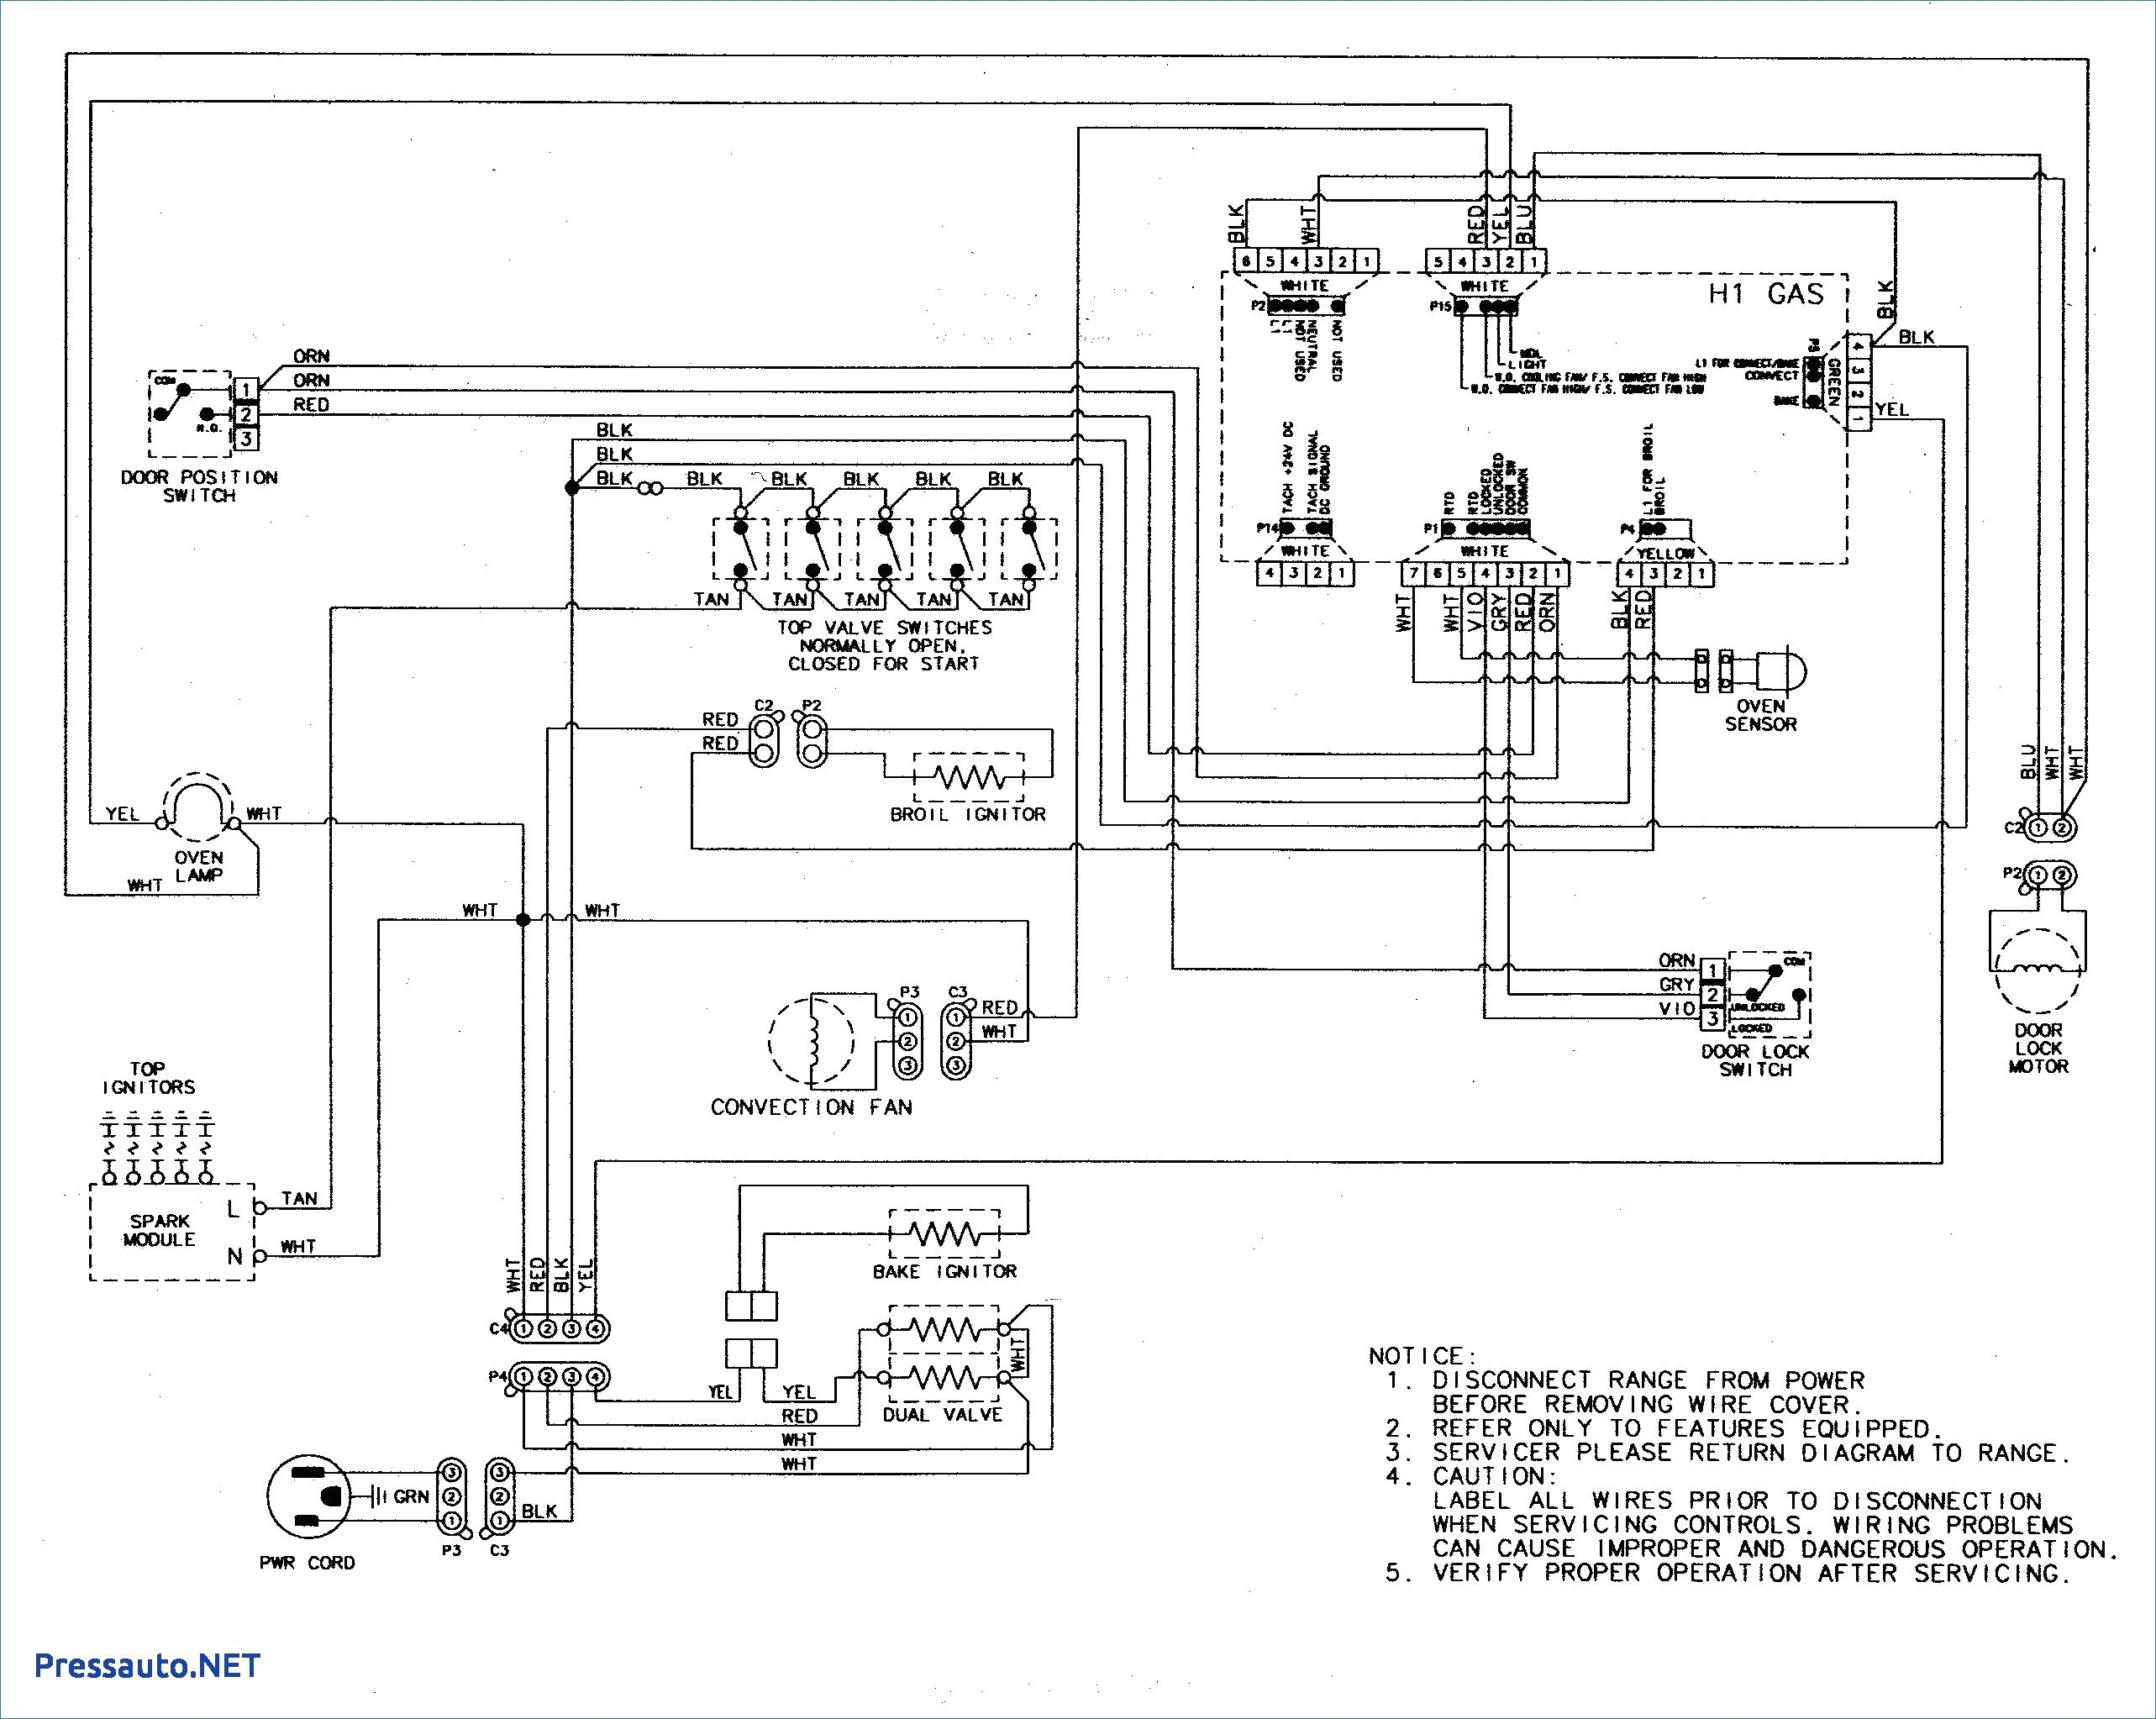 Maytag Dryer Wiring Diagram 4 Prong from i0.wp.com